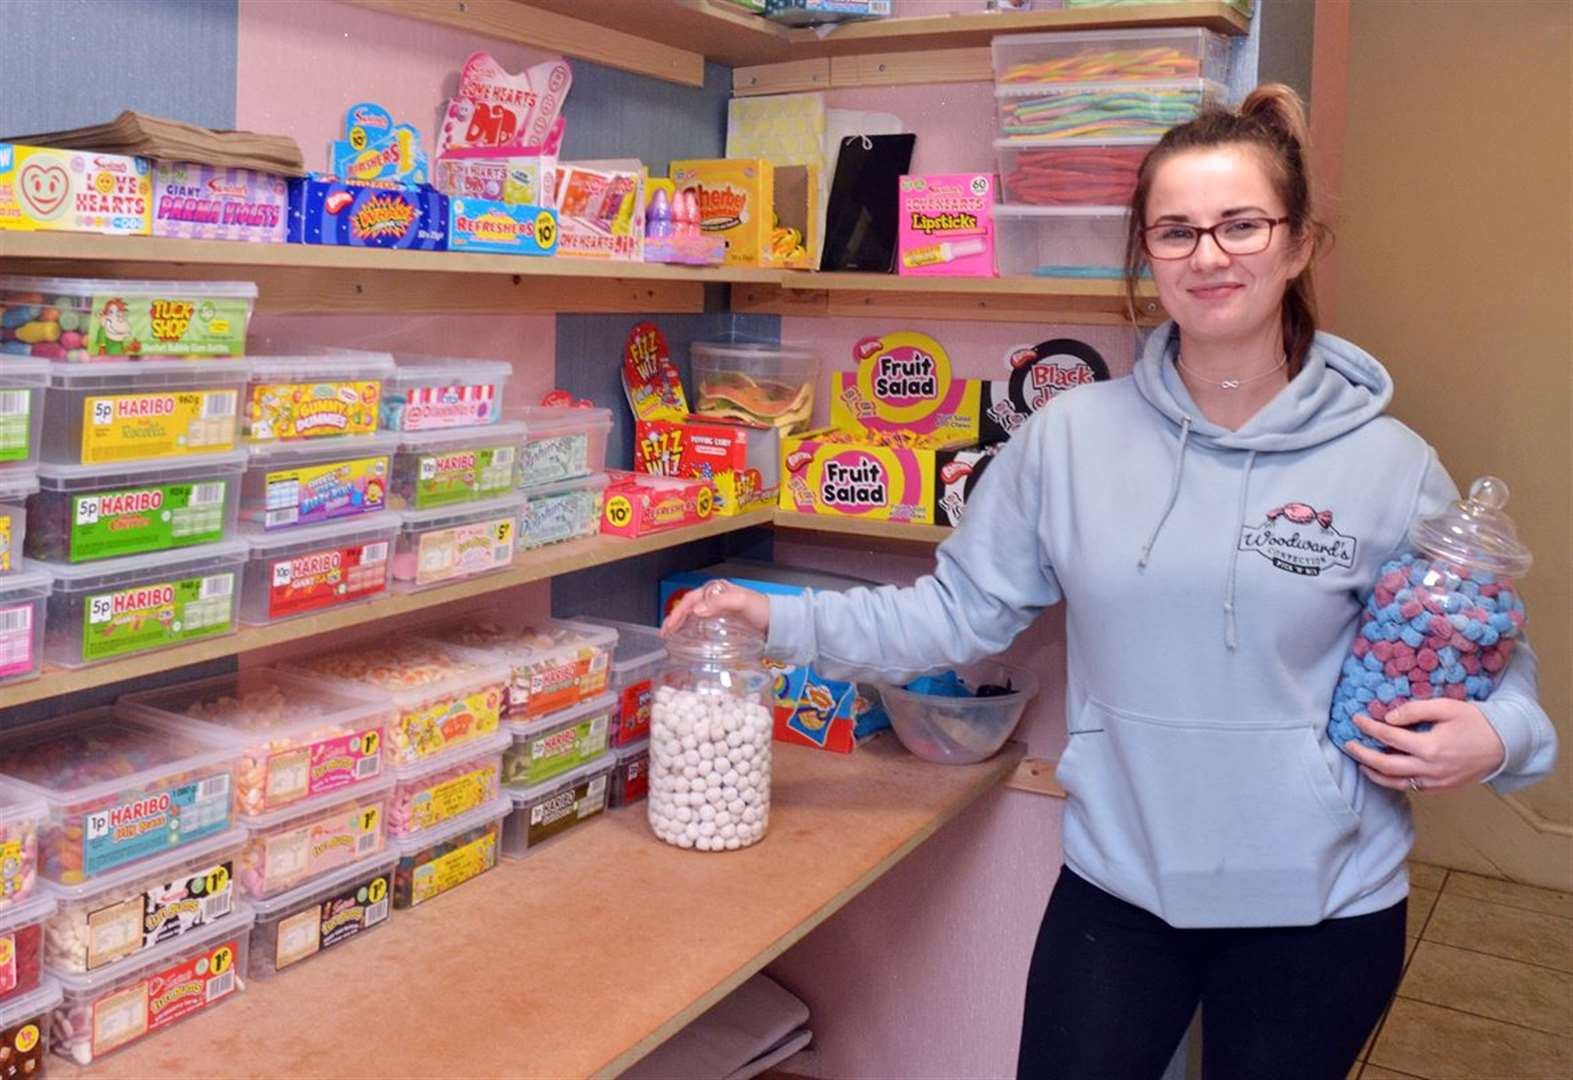 Sweet shop owners suffer abuse after asking people to count their own sweets